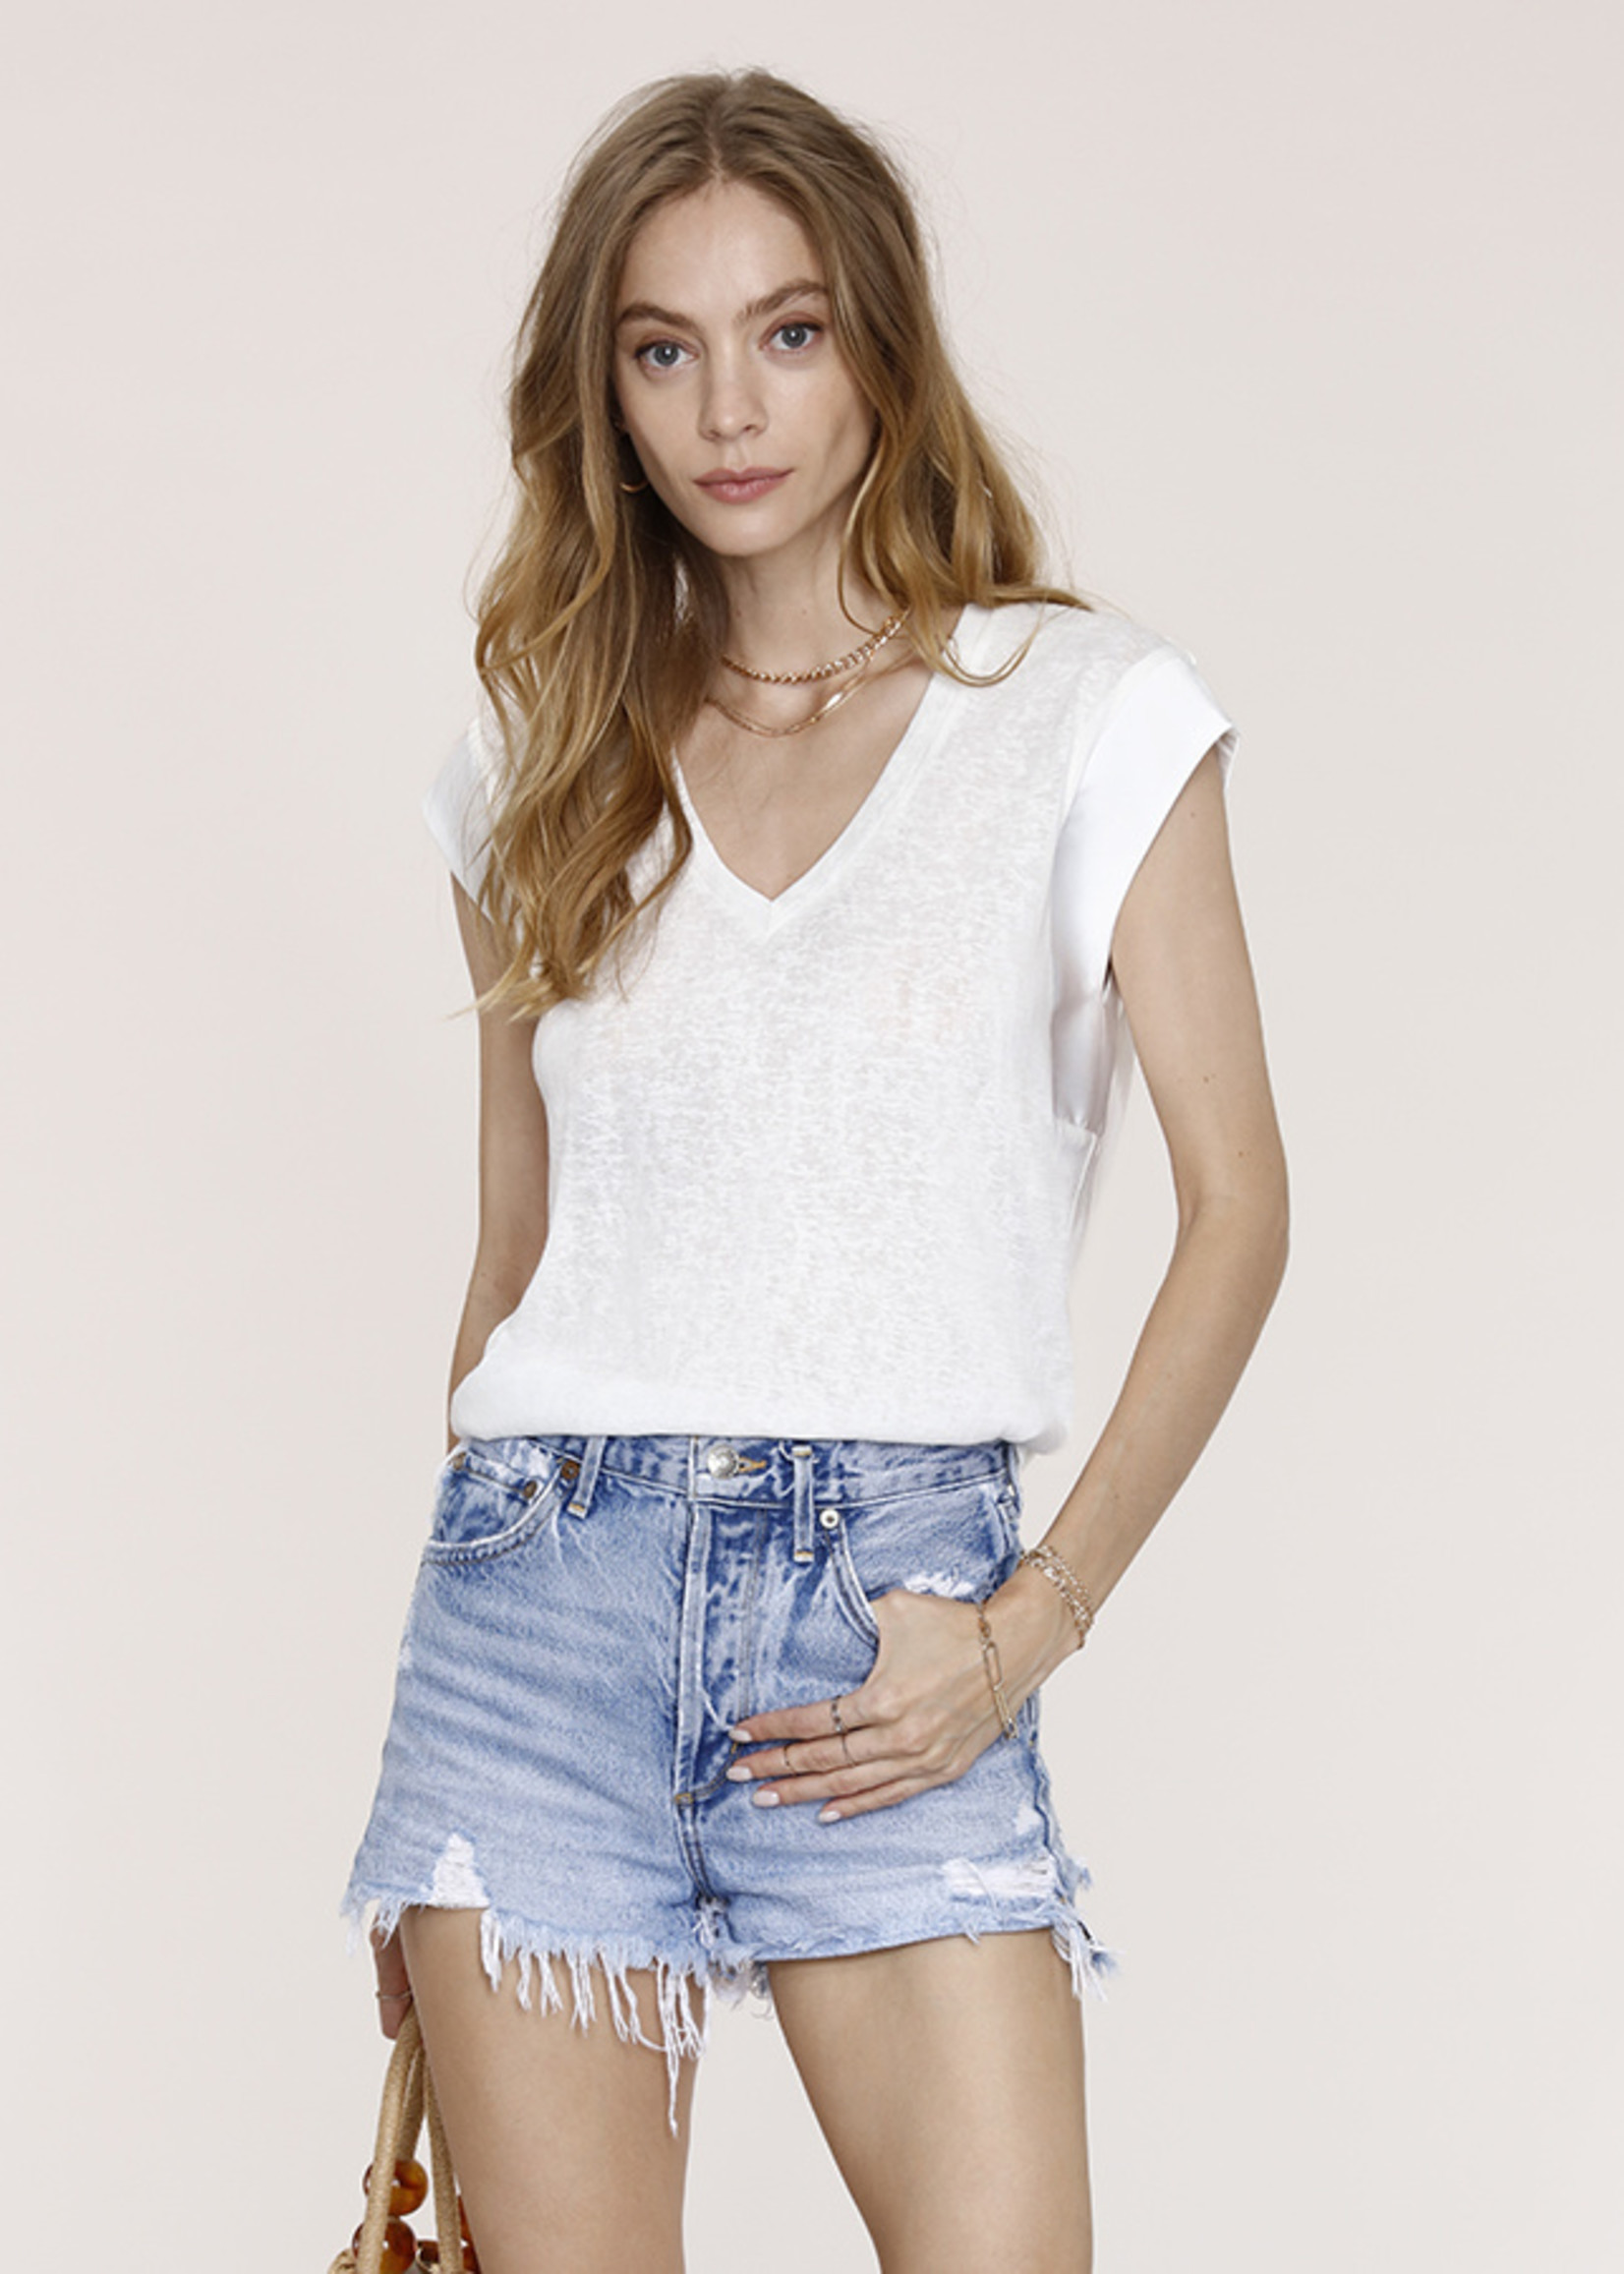 Elitaire Boutique Aurora White Tee